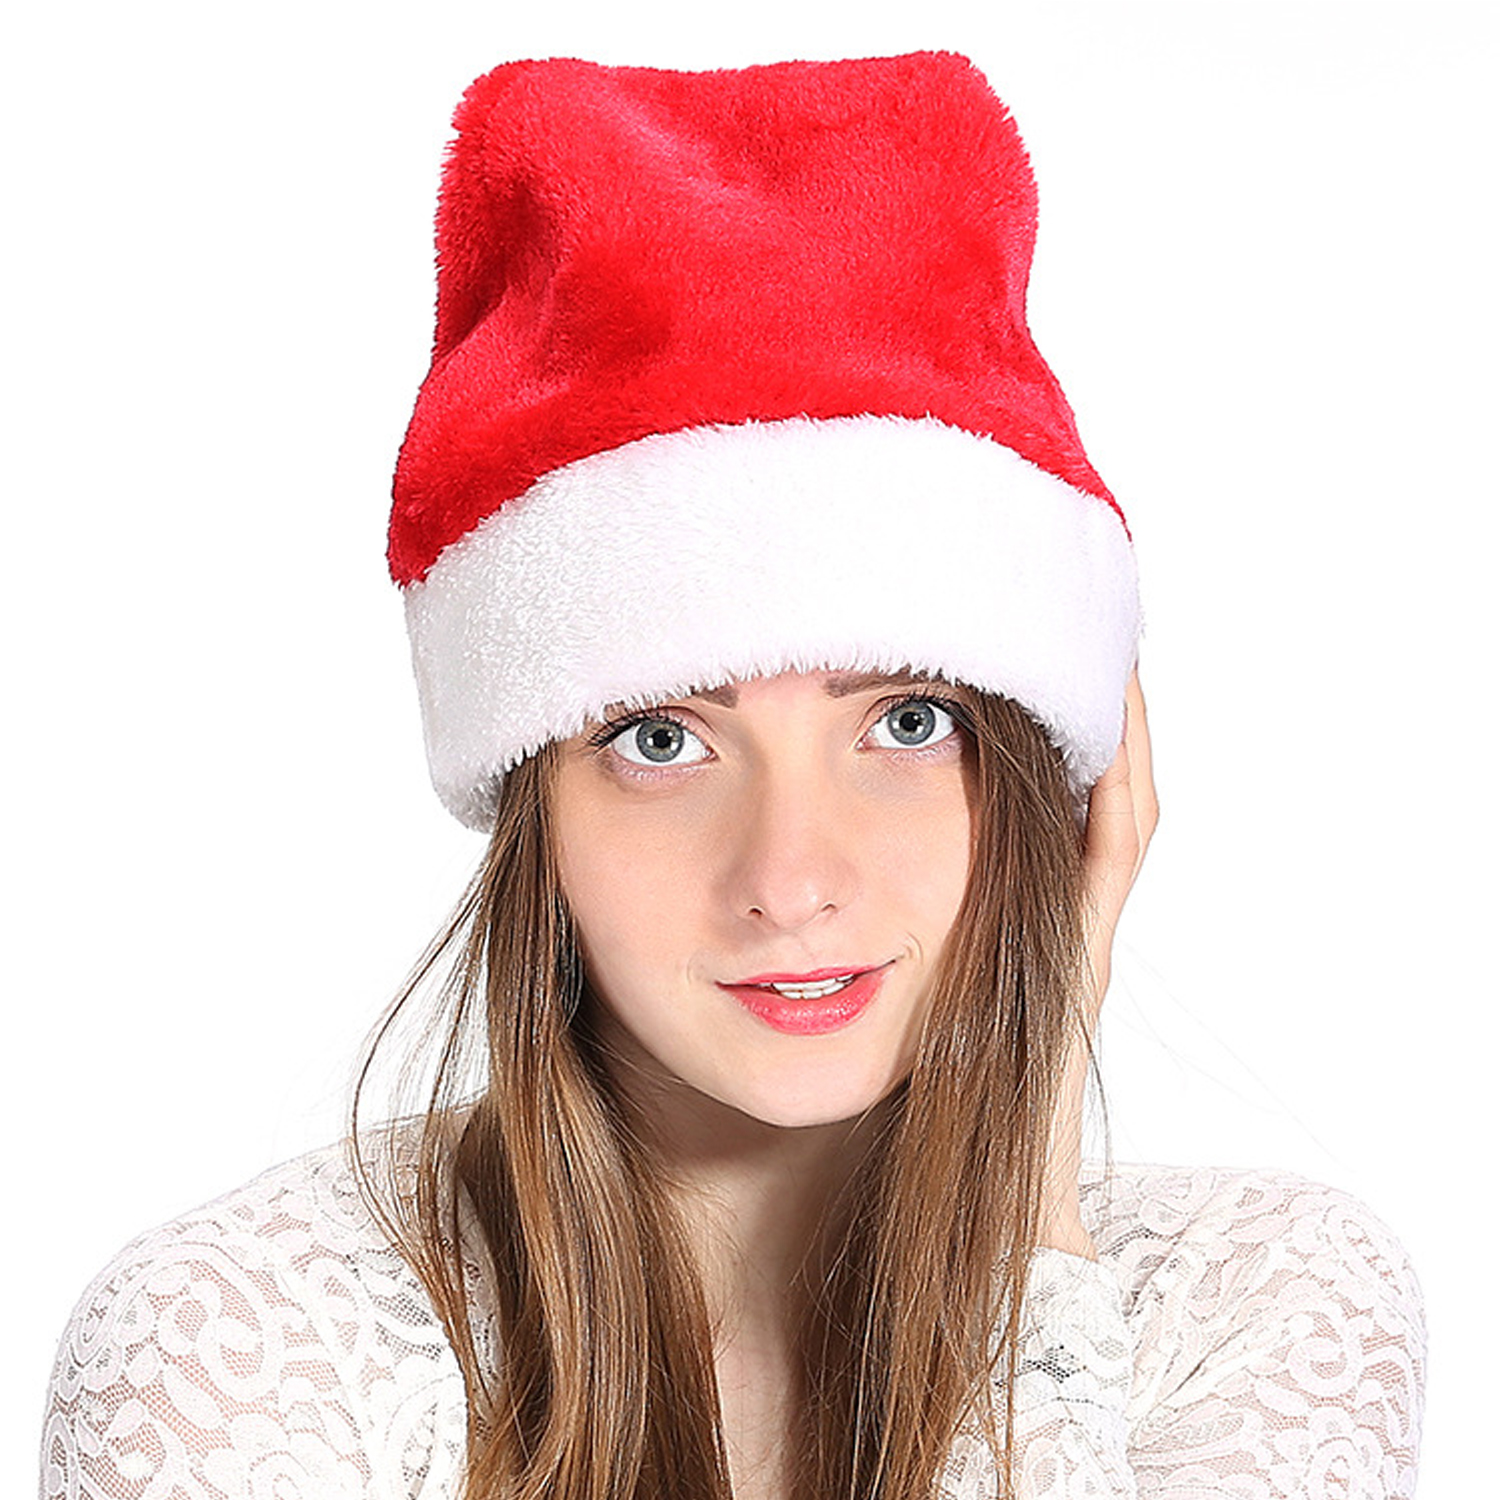 Funny Unisex Thicken Soft Warm Plush Christmas Xmas Santa Claus Hat Toy Adults Kids Party Hats Toys Gifts Carnival Celebration